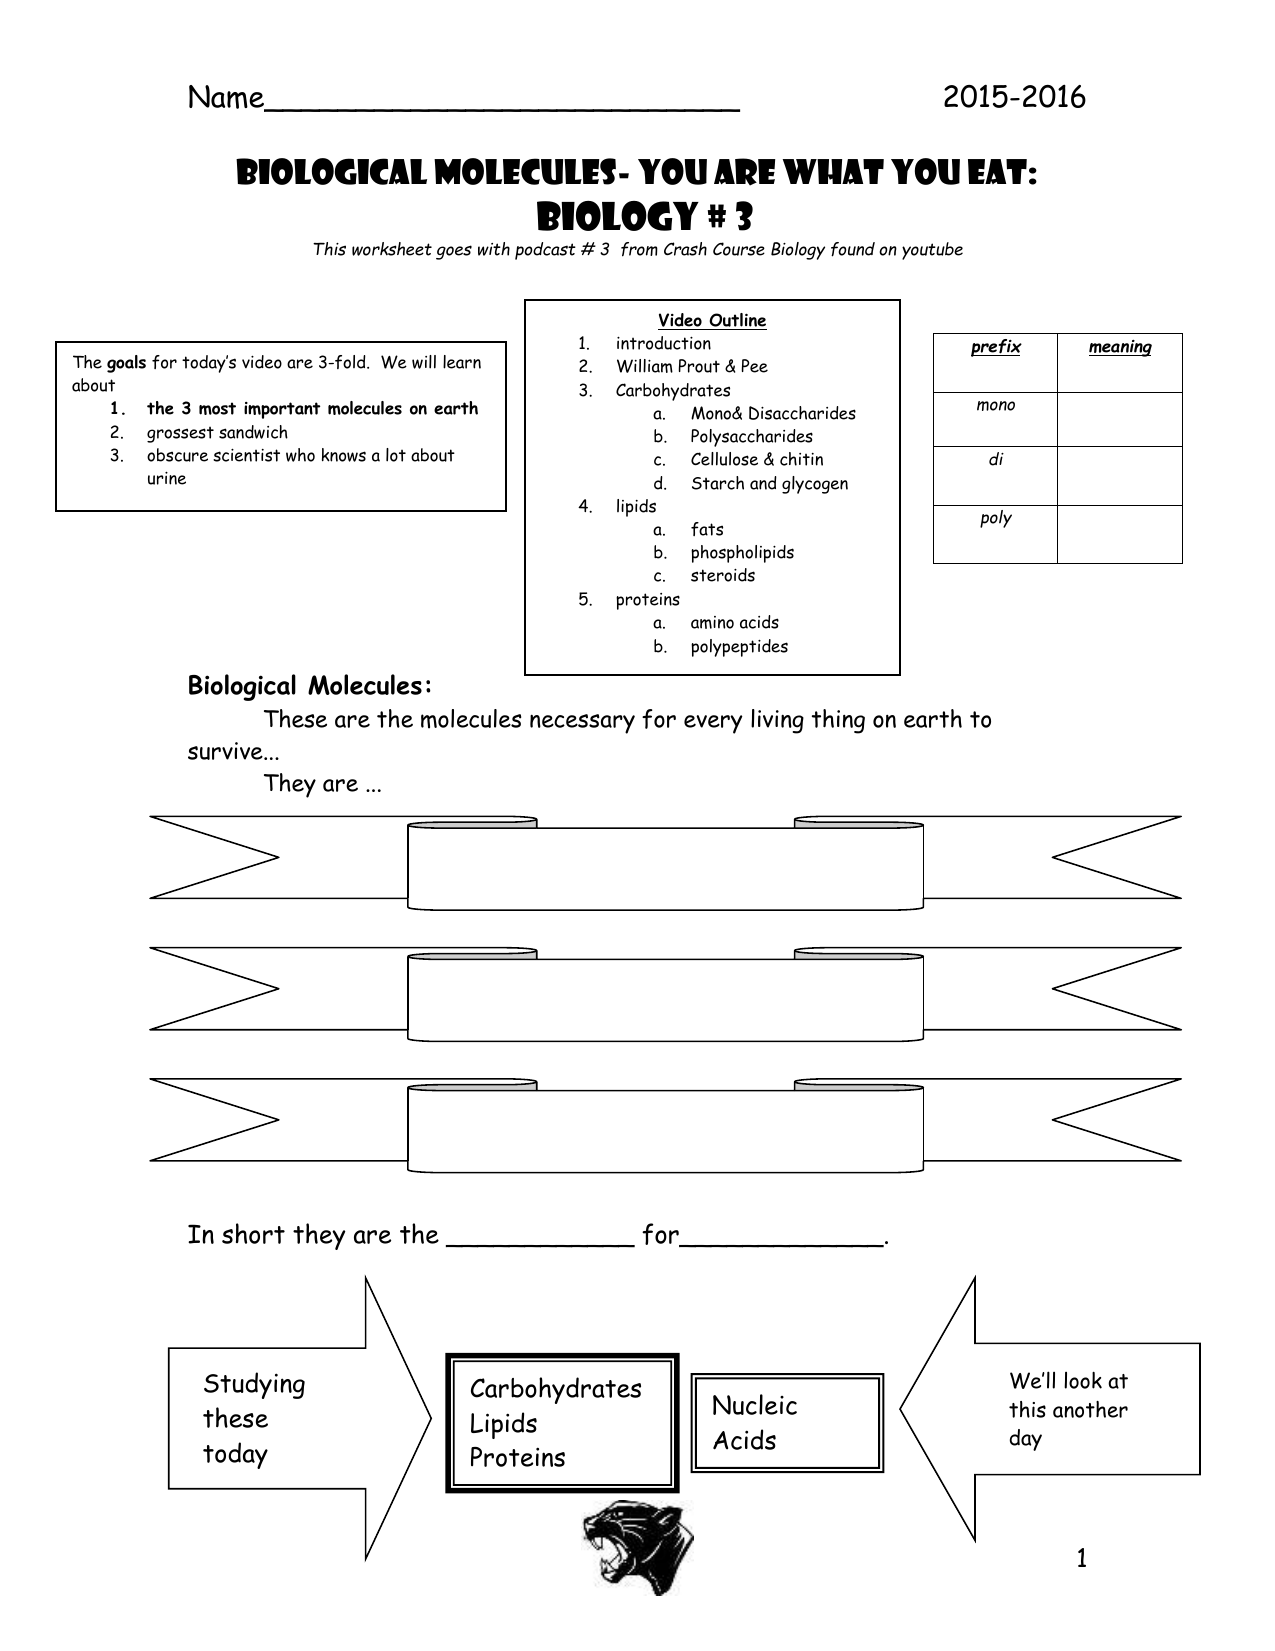 Molecular Biology Worksheet Answers